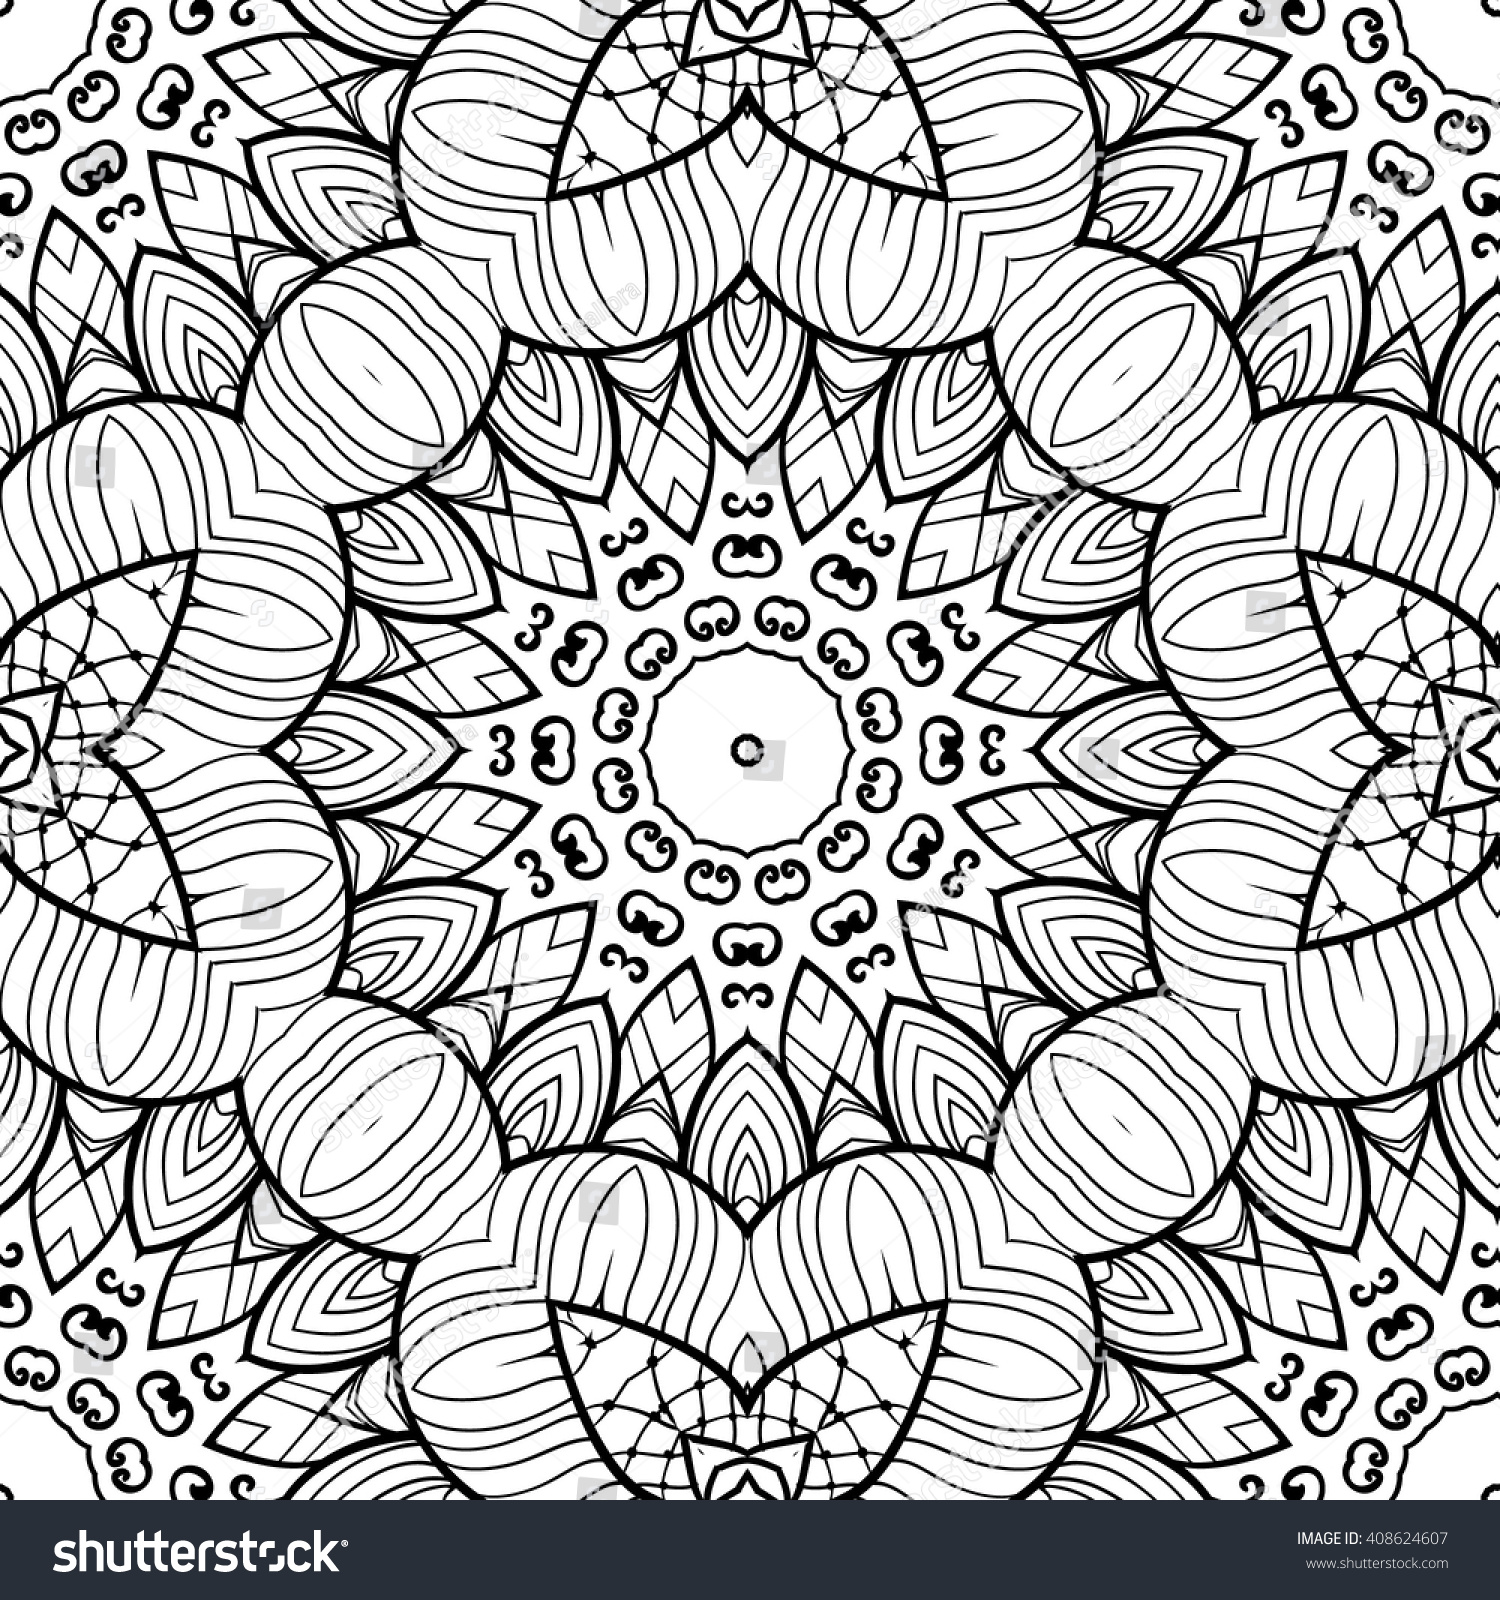 Adult Coloring Page Seamless Zendoodle Vector For Art Book Square